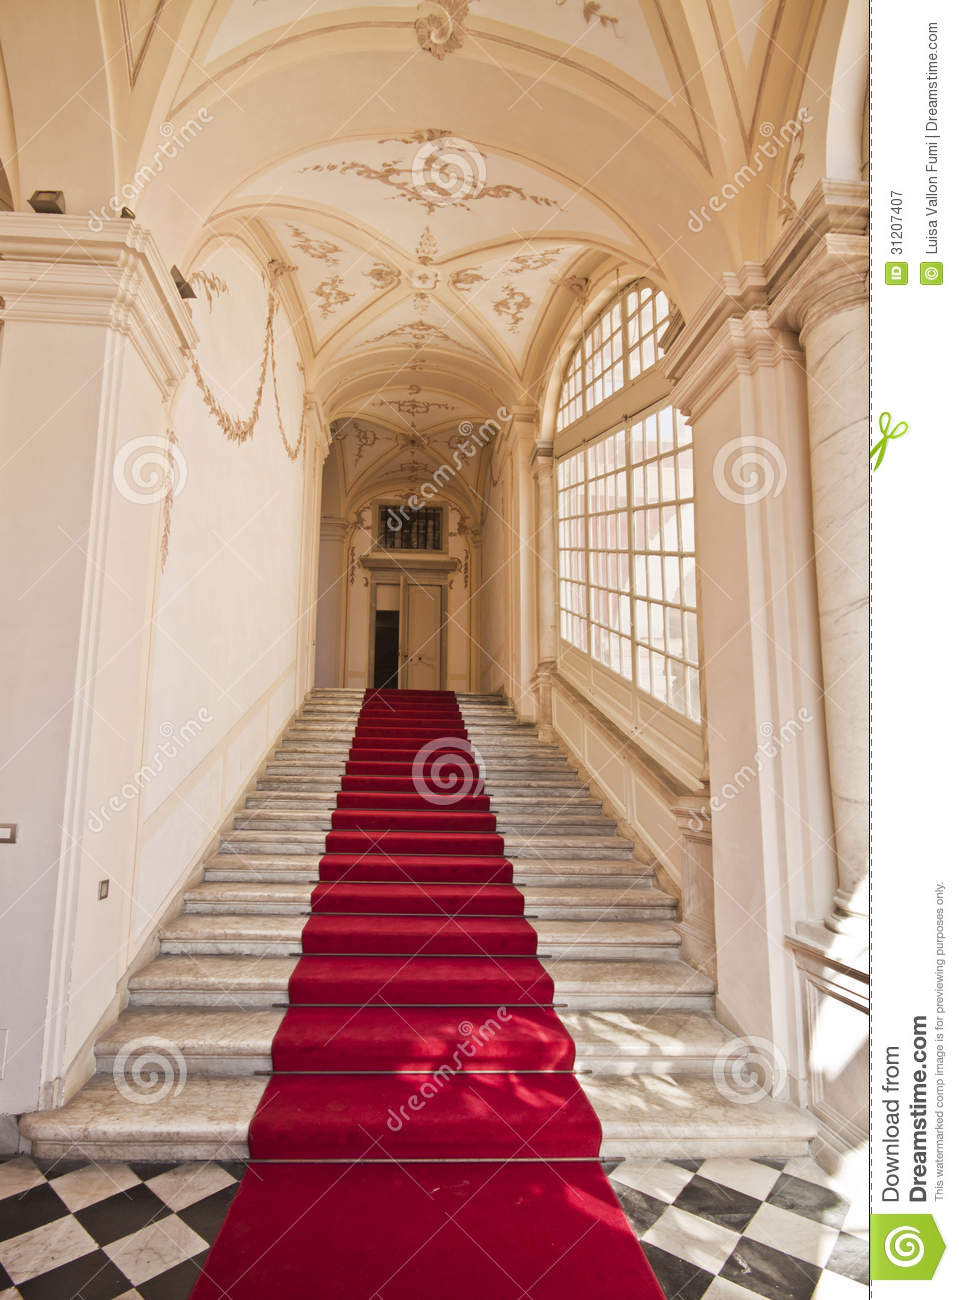 Royalty Free Stock Photography Genoa Italy Royal Palace Entrance Hall Staircase Palazzo Reale Palazzo Stefano Balbi Interior Flight Stairs Image31207407 on palazzo interior design